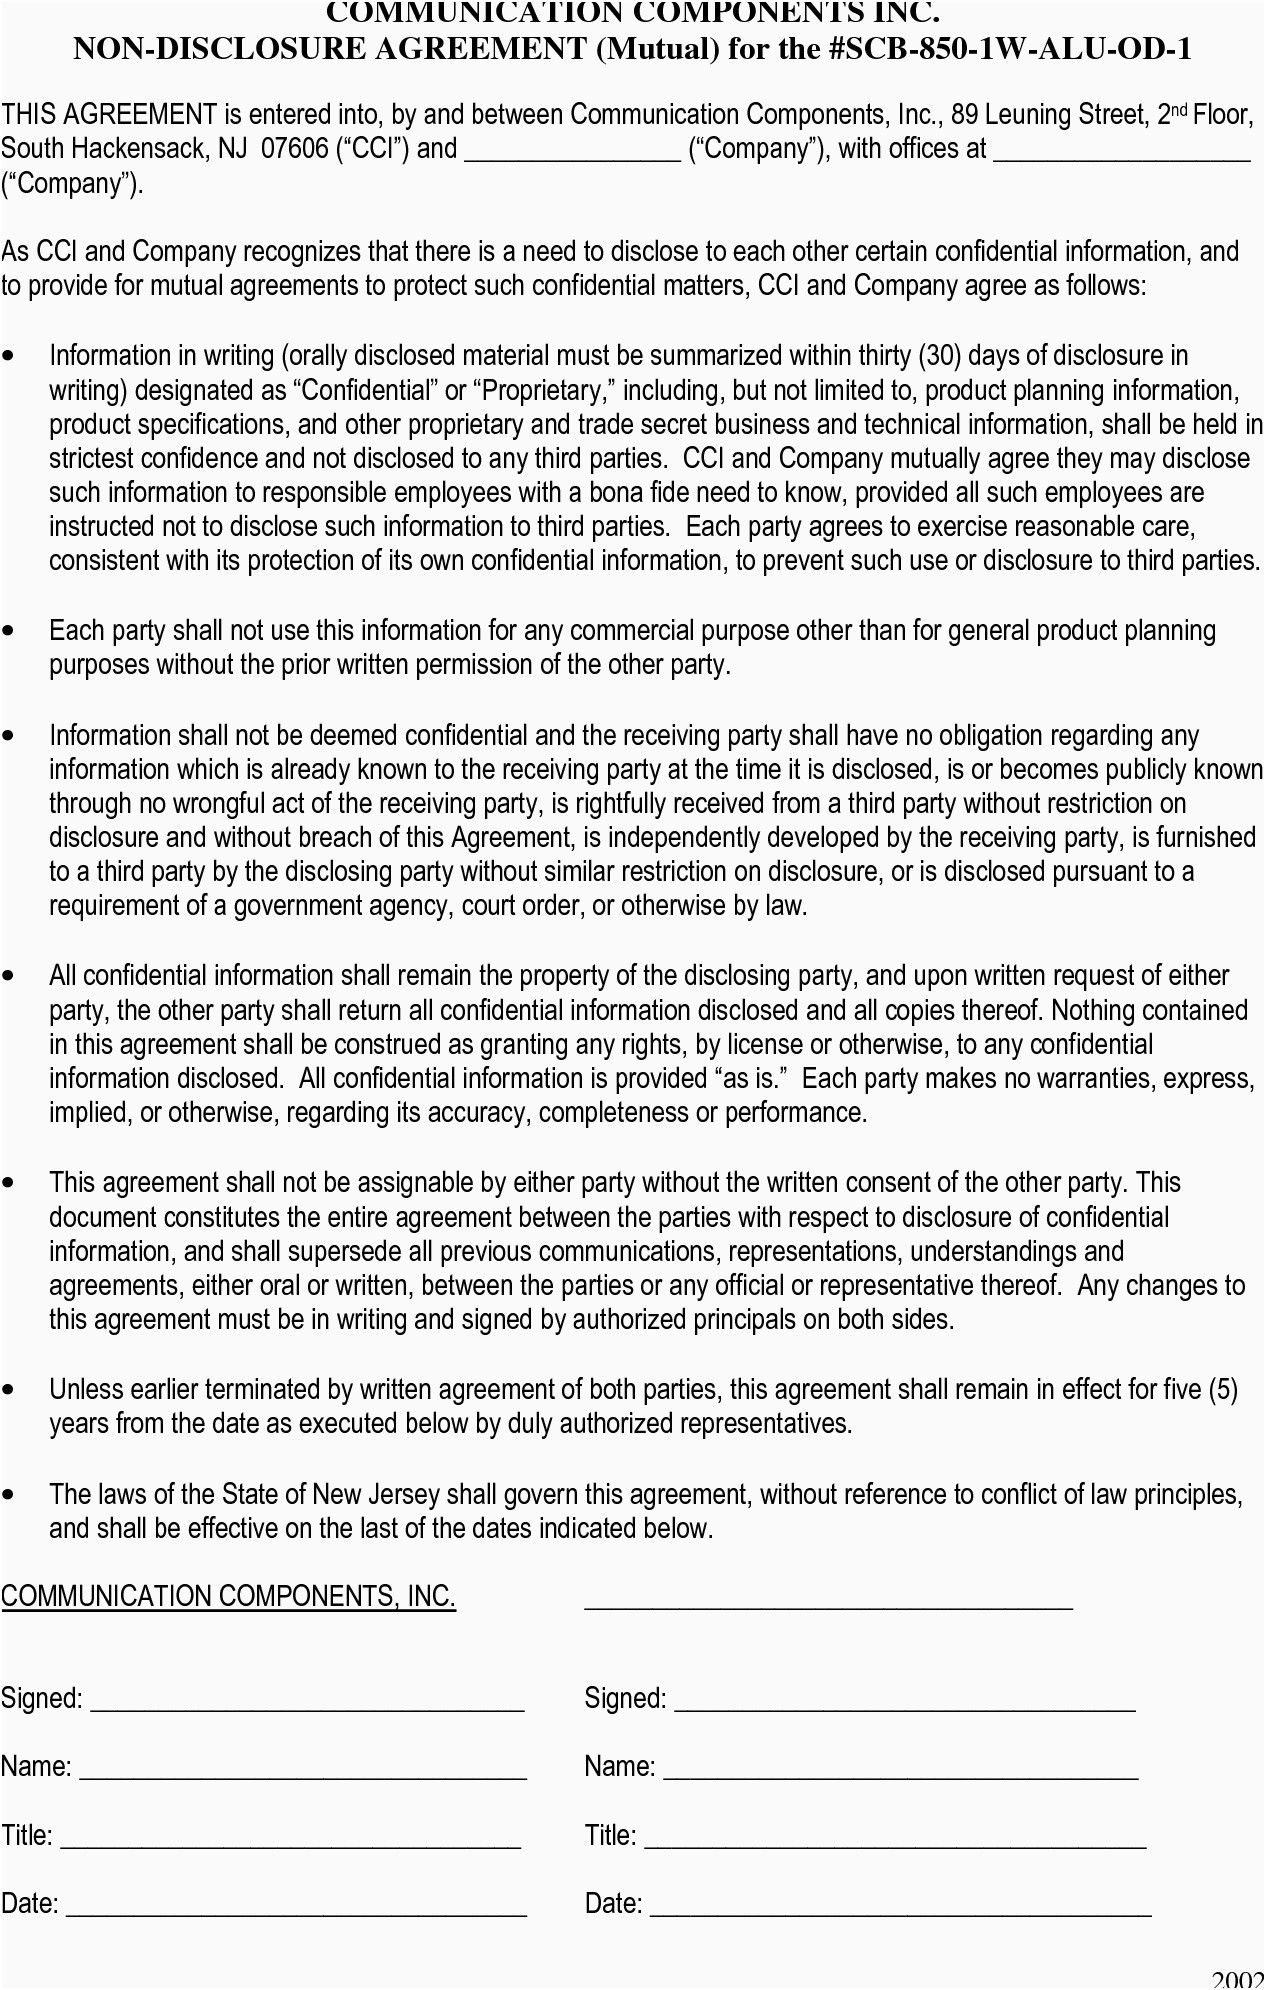 Disclosure Letter Template - 16 Best Non Disclosure Agreement Template Word